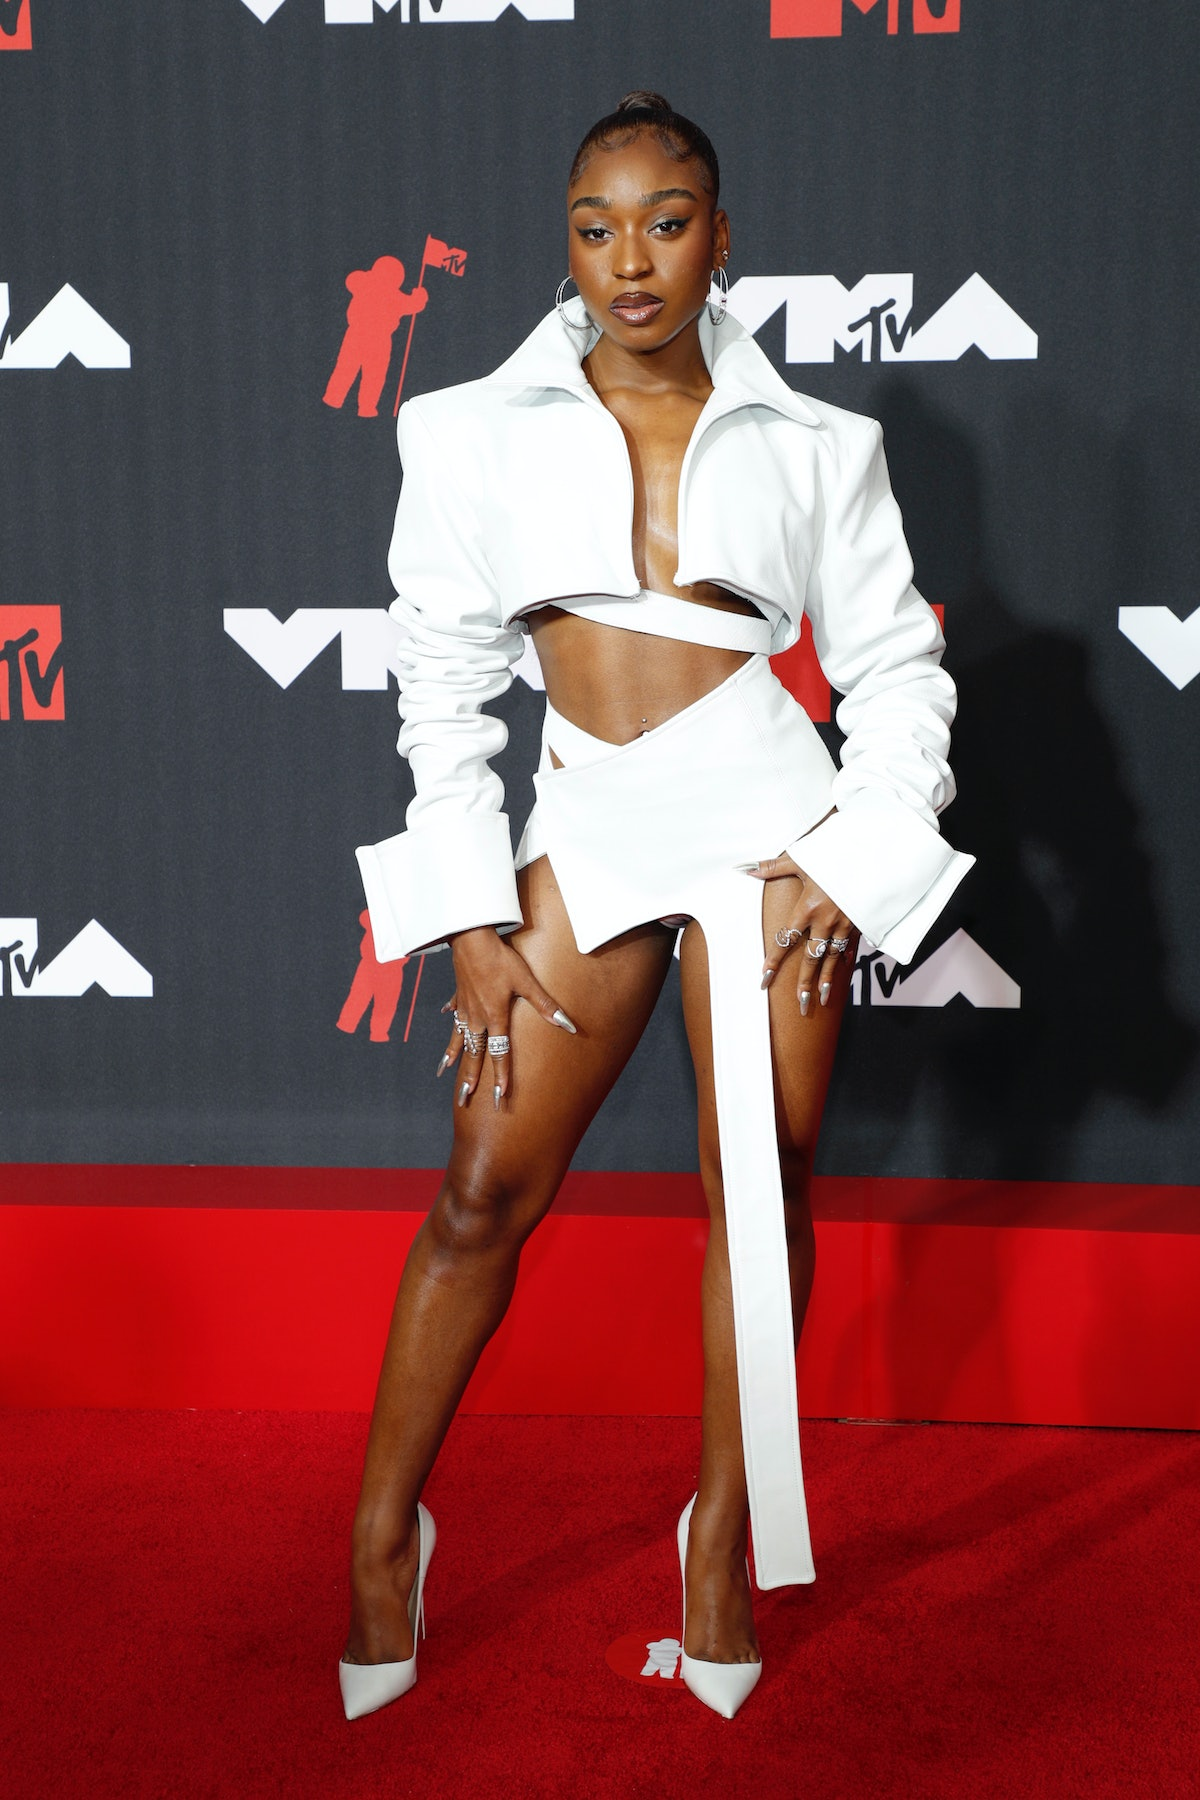 Normani attends the 2021 MTV Video Music Awards at Barclays Center on September 12, 2021 in the Broo...